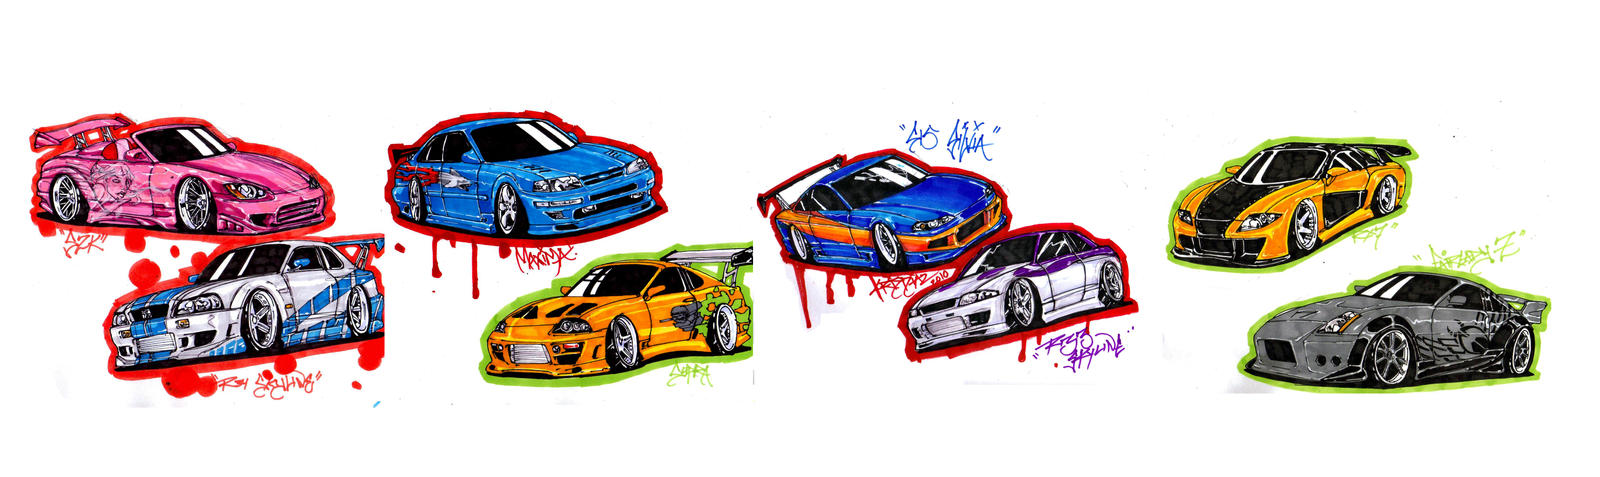 fast and furious cars part 1 by KrisDiaz on DeviantArt